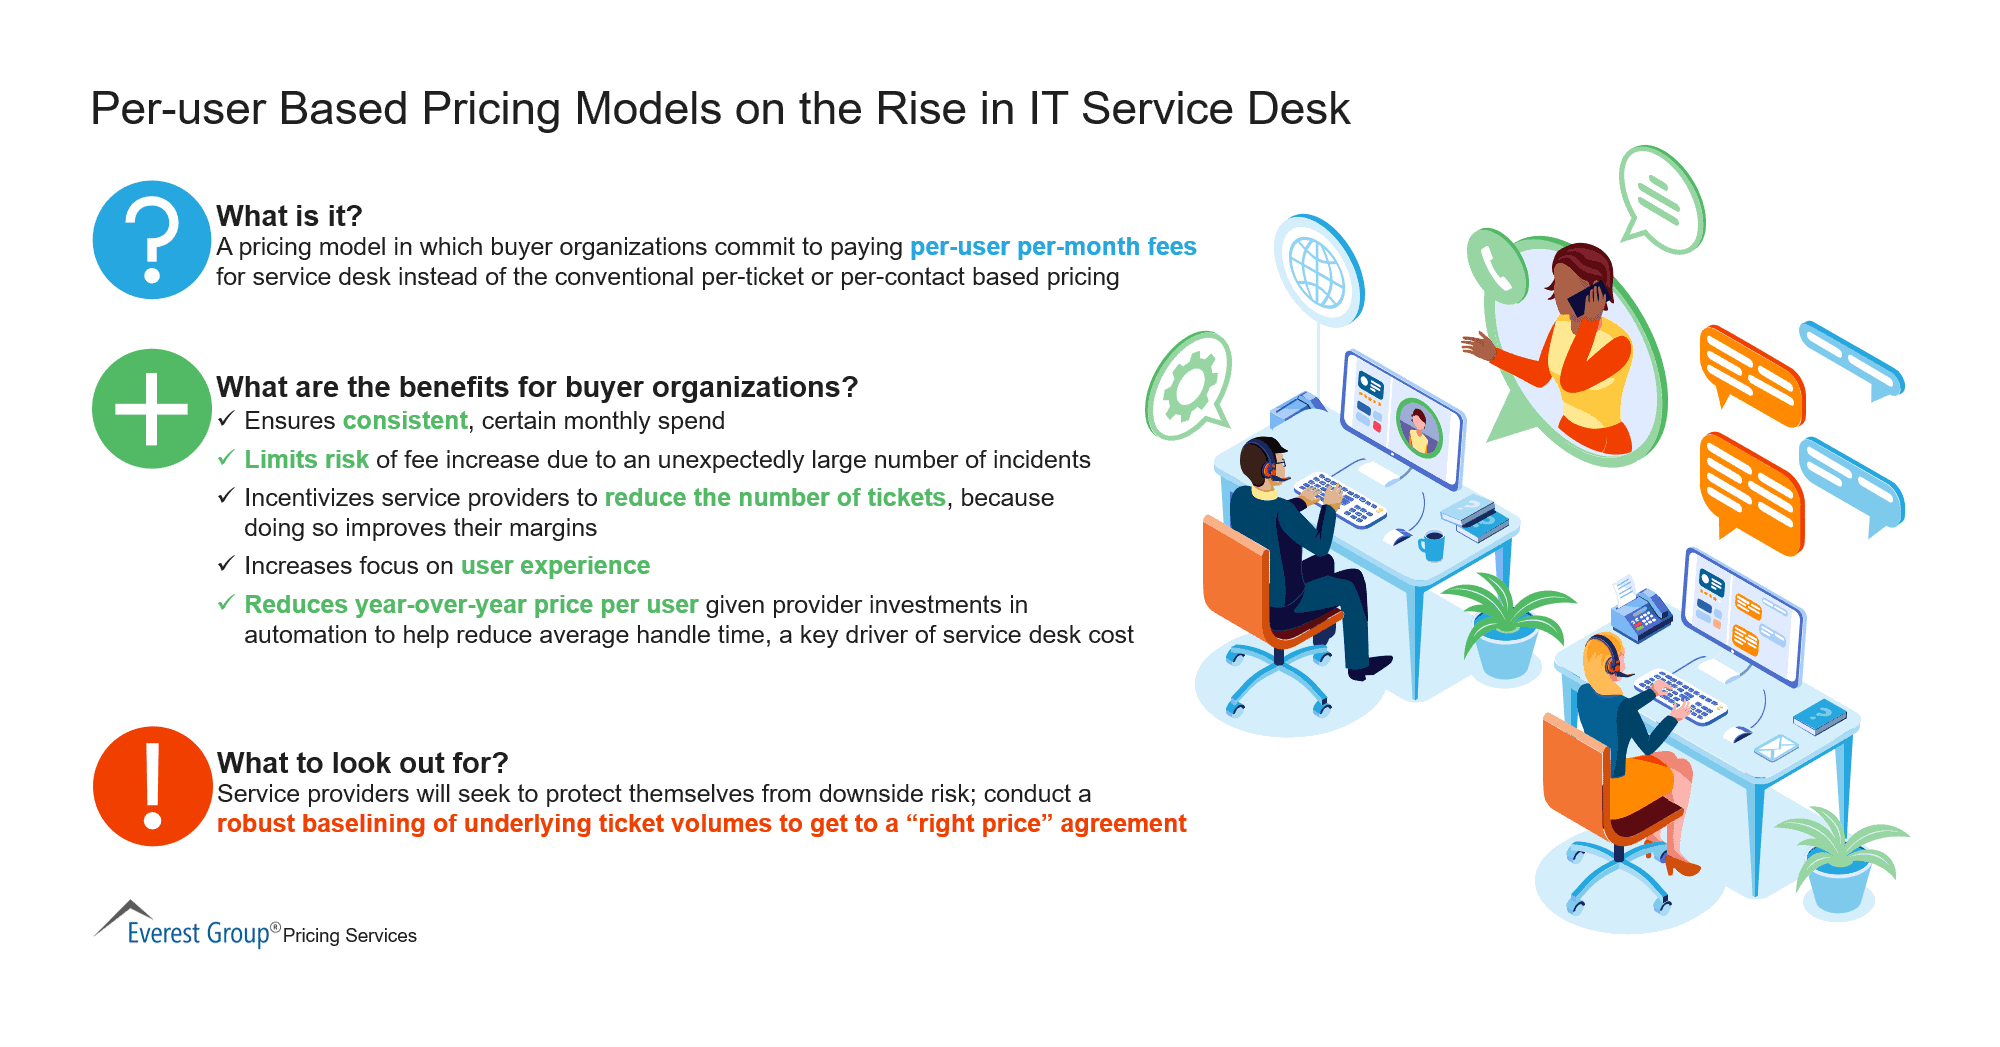 Per-user Based Pricing Models on the Rise in IT Service Desk